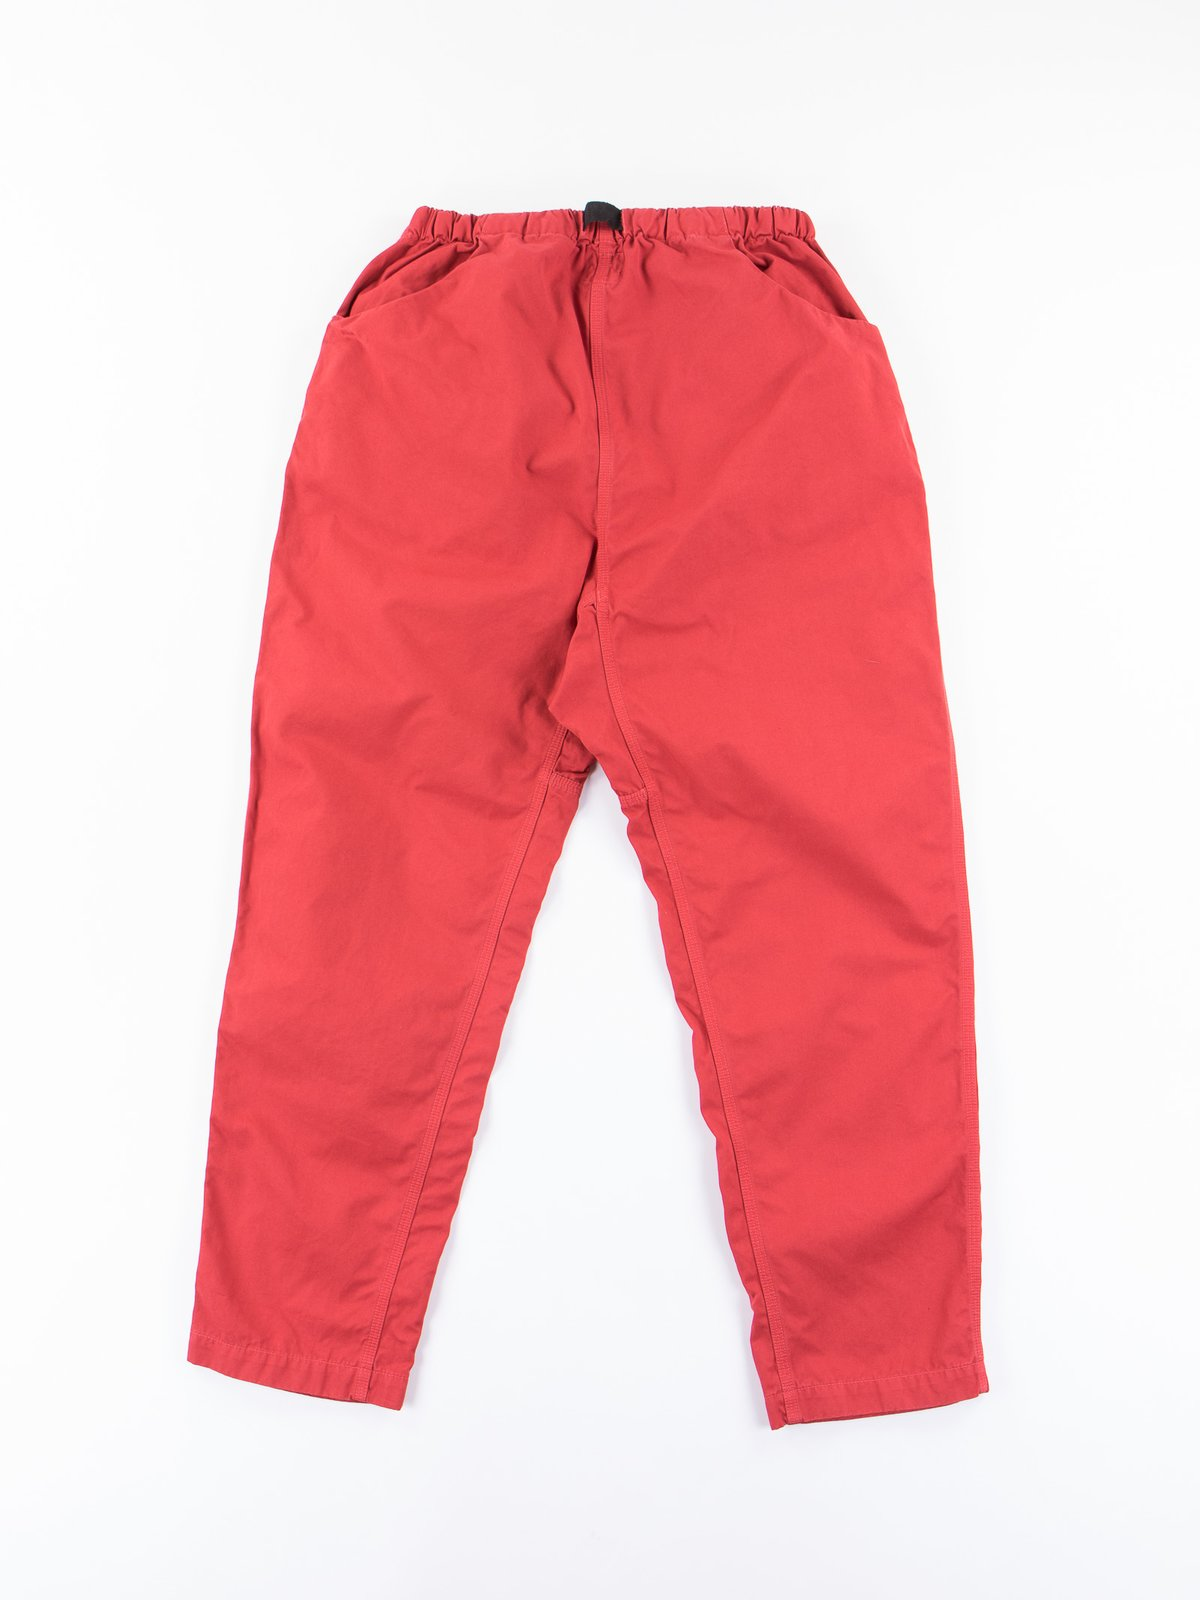 Red Overdyed Poplin Climbing Pant - Image 5